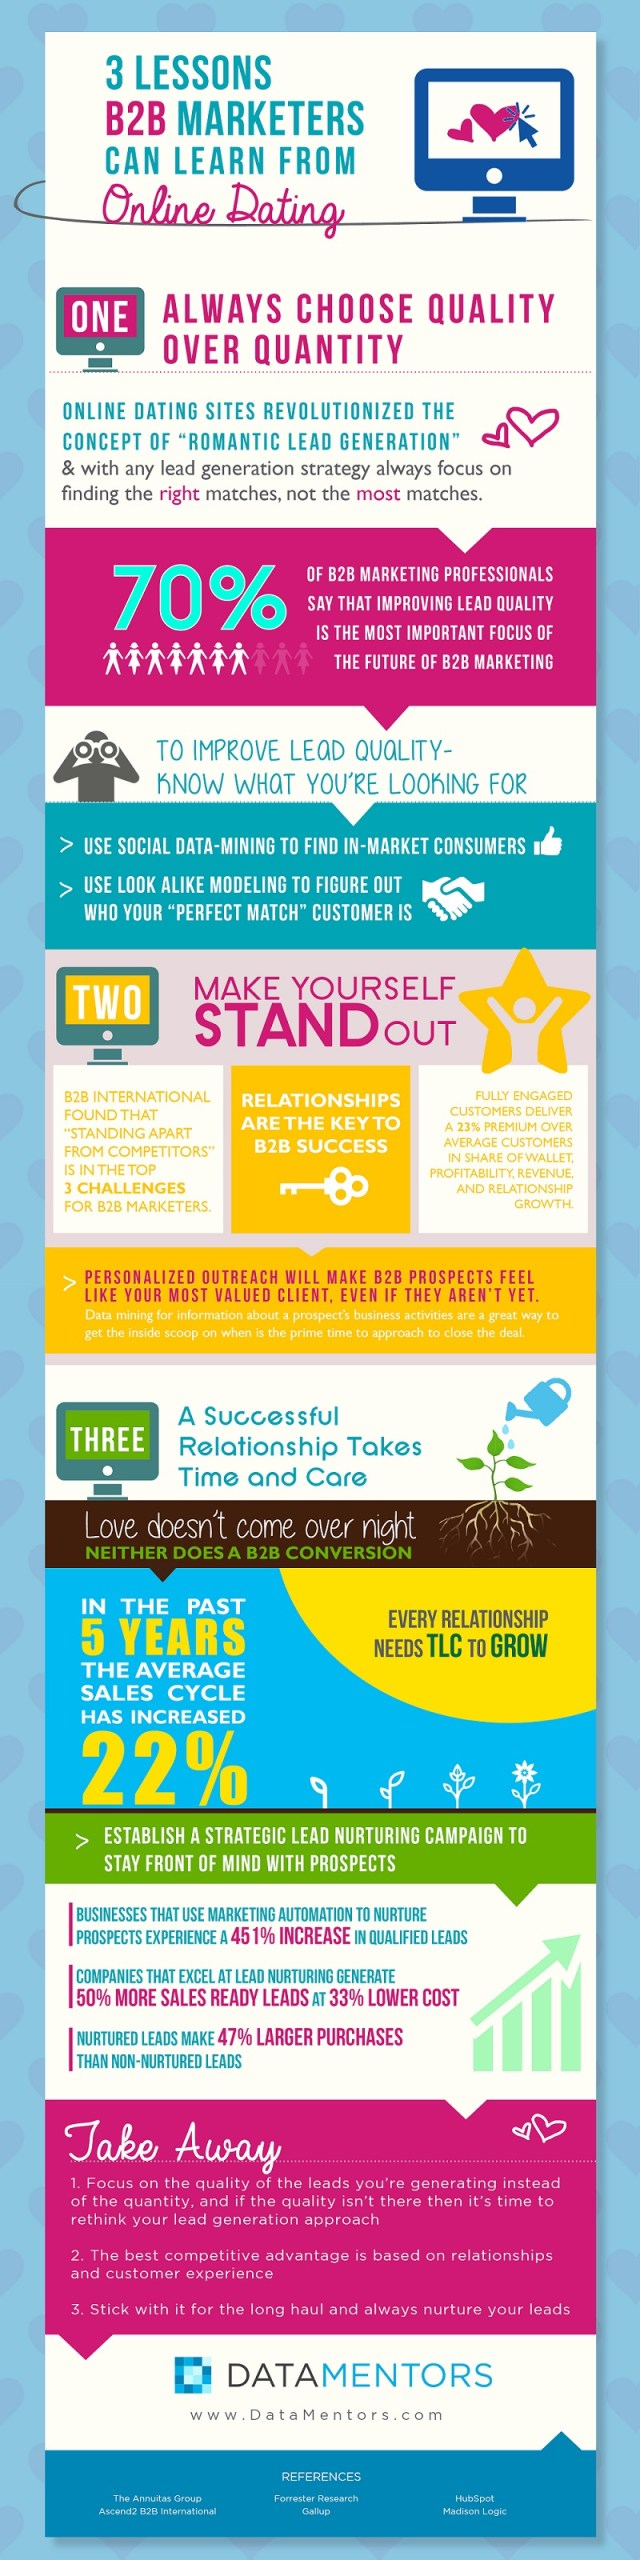 Infographie| Marketeurs B2B : 3 lessons can learn from Online Dating